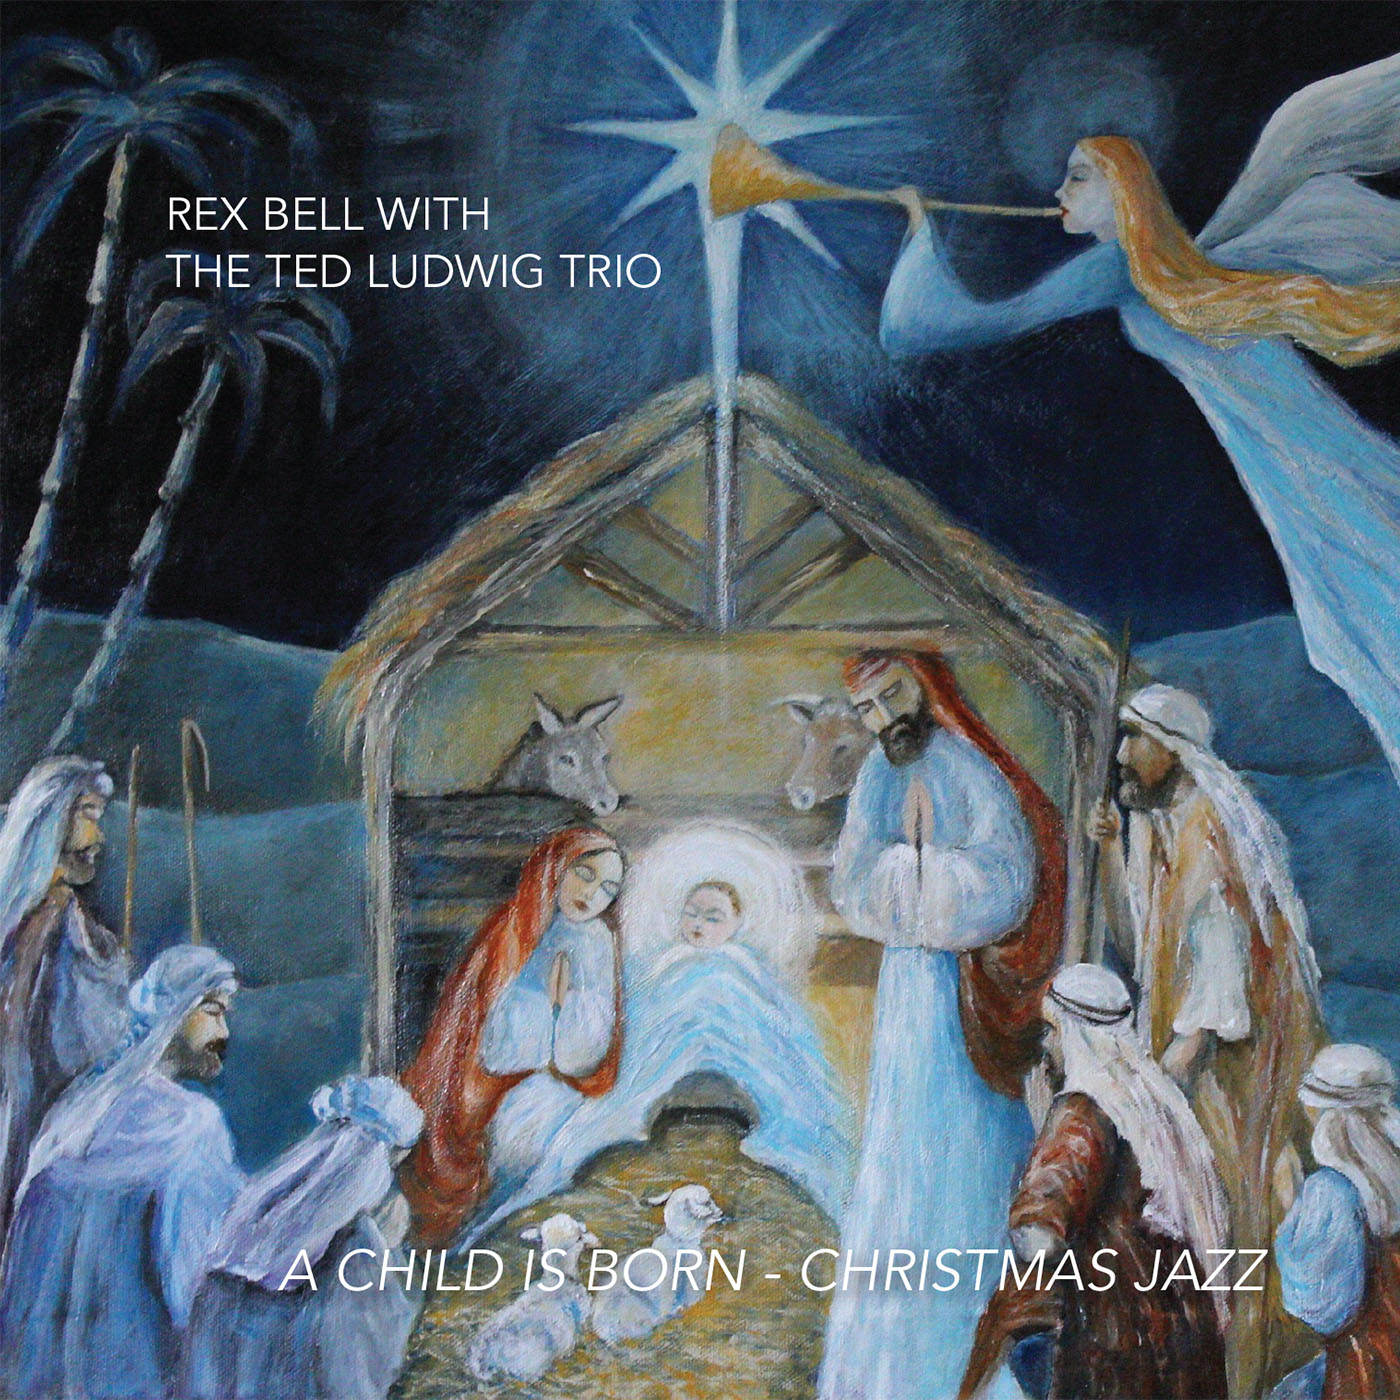 Rex-Bell-With-The-Ted-Ludwig-Trio-A-Child-Is-Born-Cover-Art